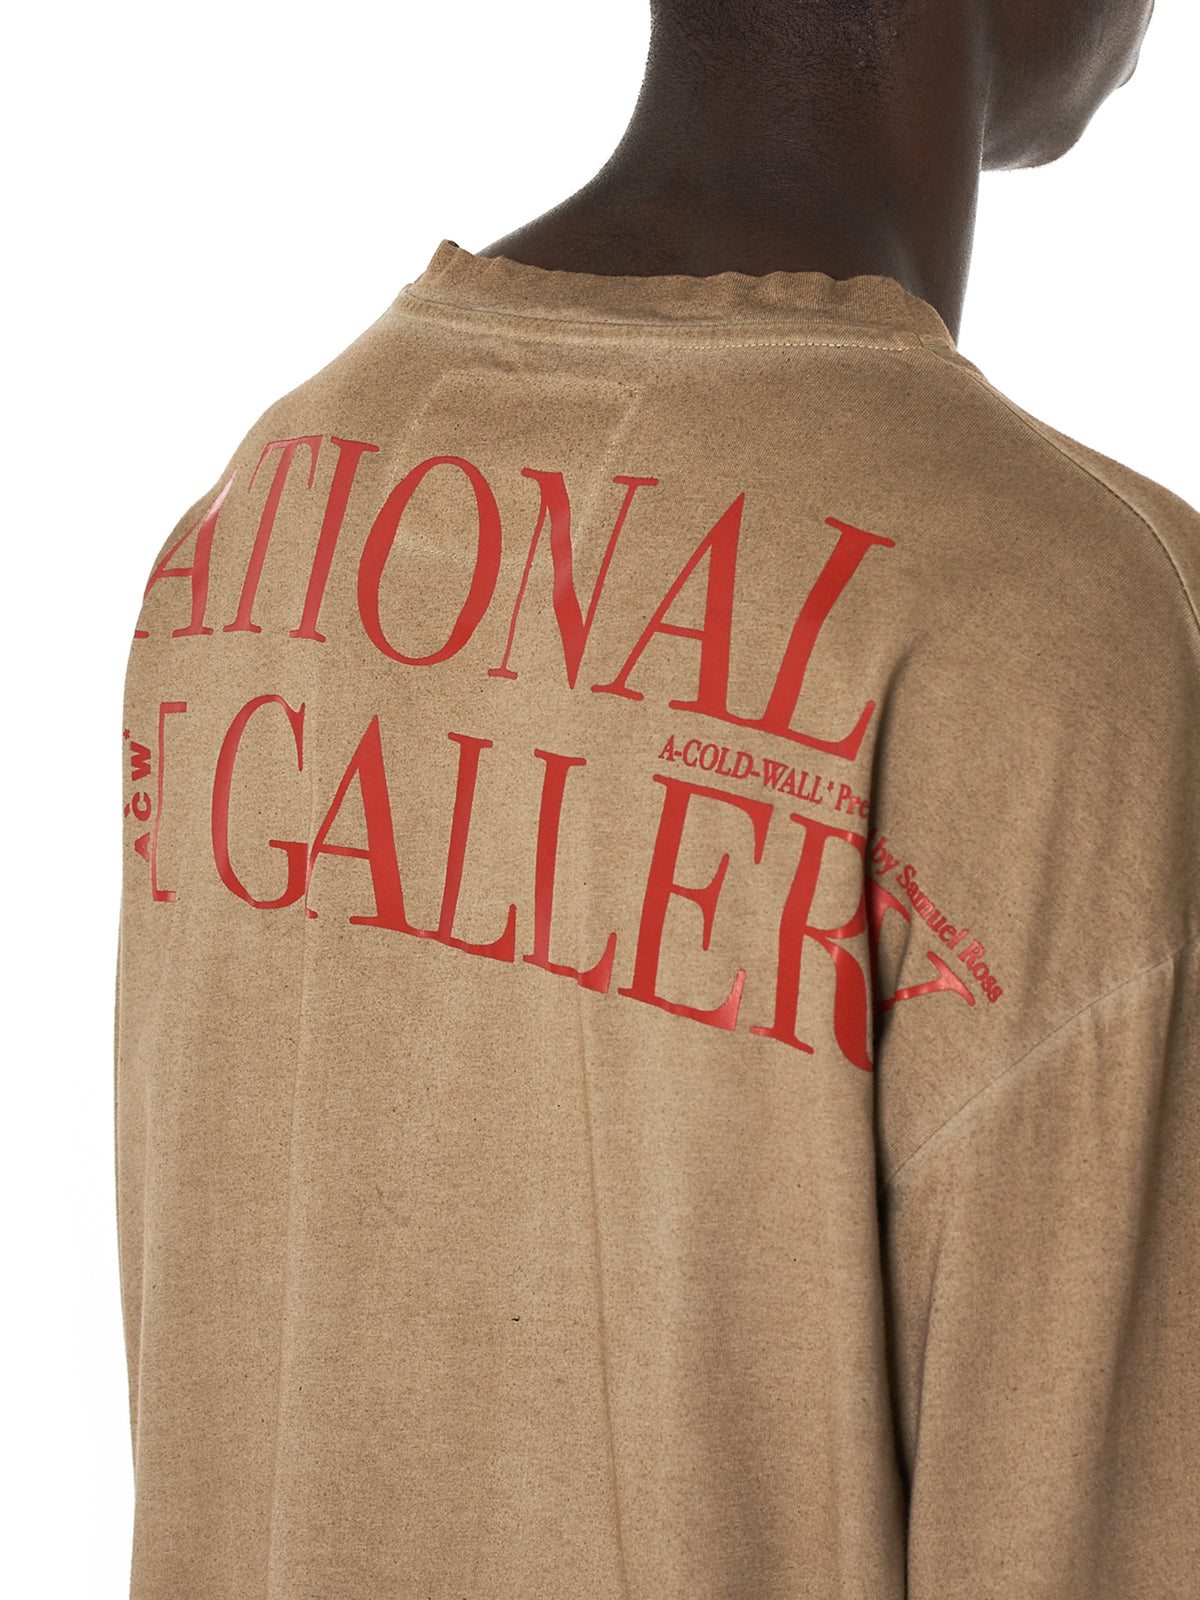 A Cold Wall* National Gallery Tee Shirt - Hlorenzo Detail 2